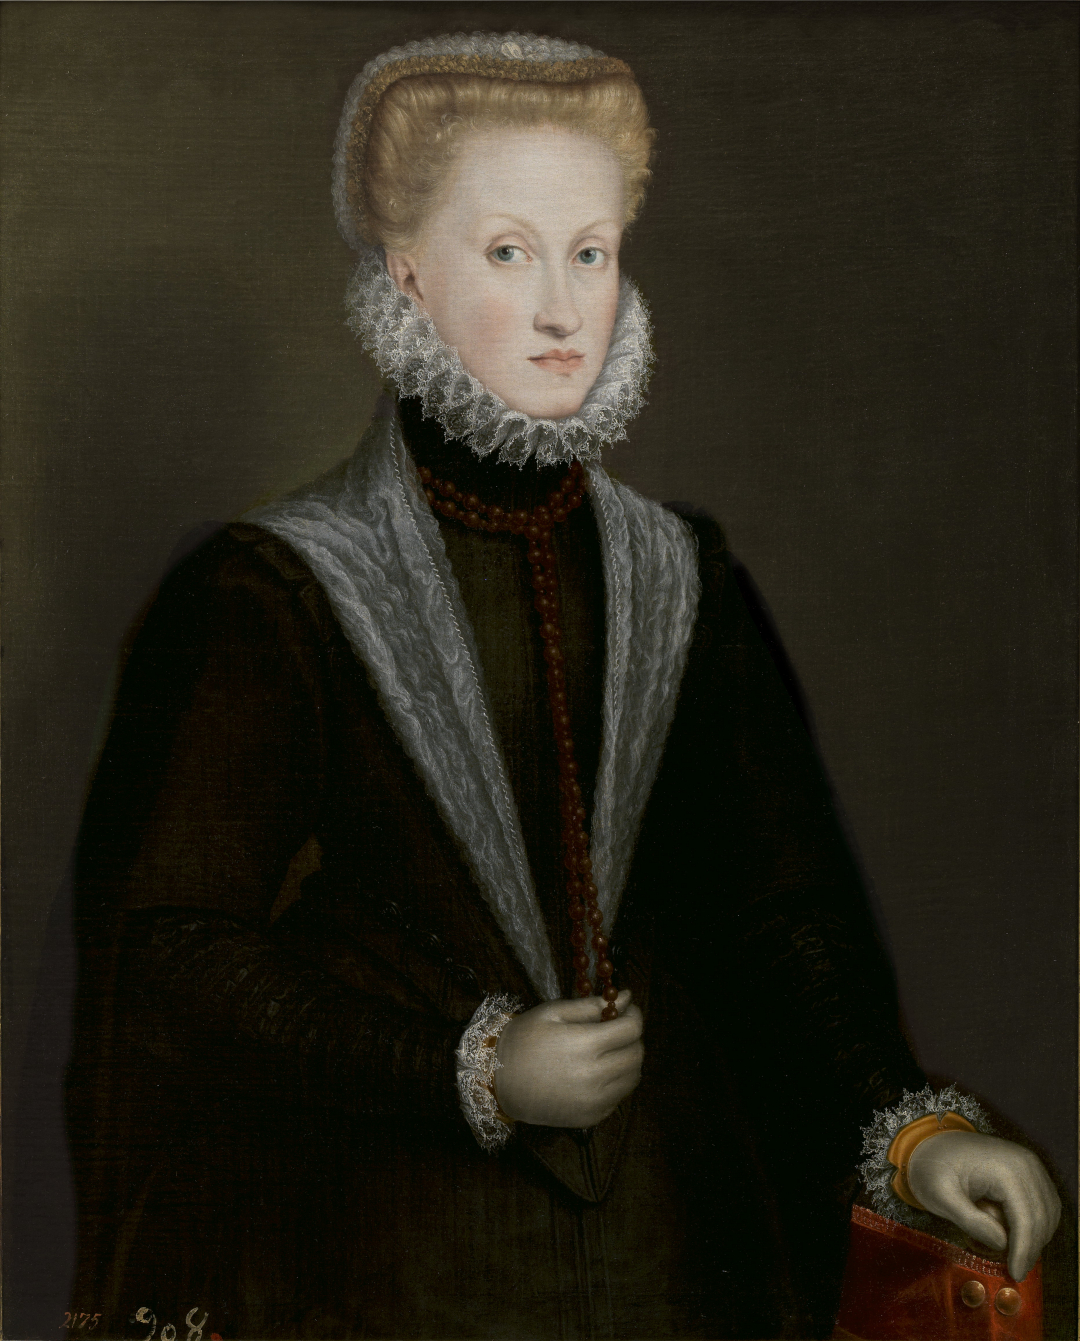 Sofonisba-Anguissola-Queen-Anne-of-Austria-Sofonisba-Anguissola-Oil-on-canvas-c.-1573-Madrid-Museo-Nacional-del-Prado-1080x1341.jpg